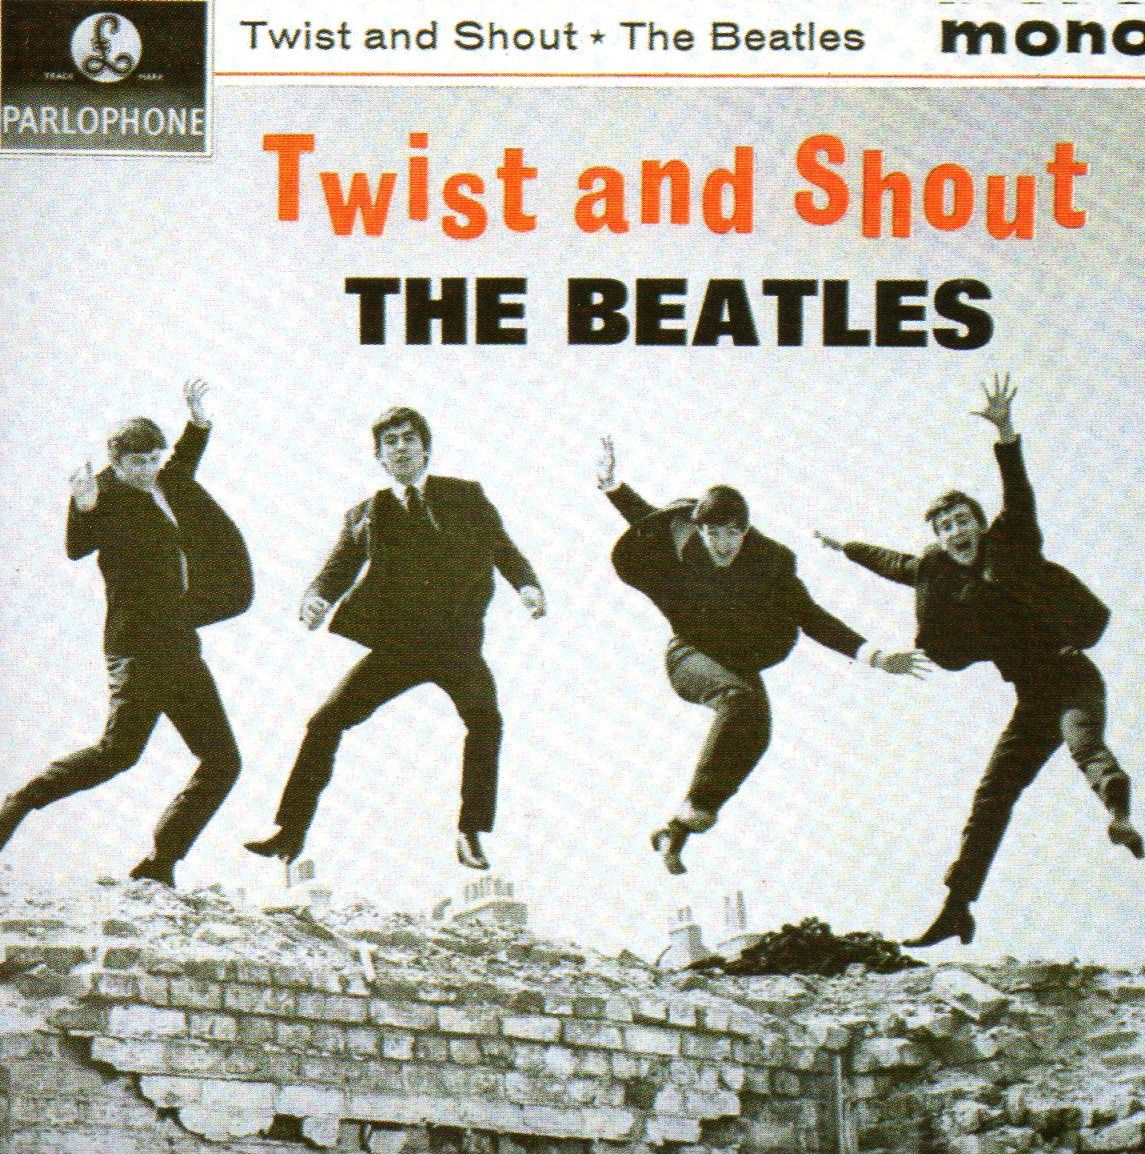 THE BEATLES - Twist and Shout EP REPLICA 4-TRACK CARD SLEEVE - CD single